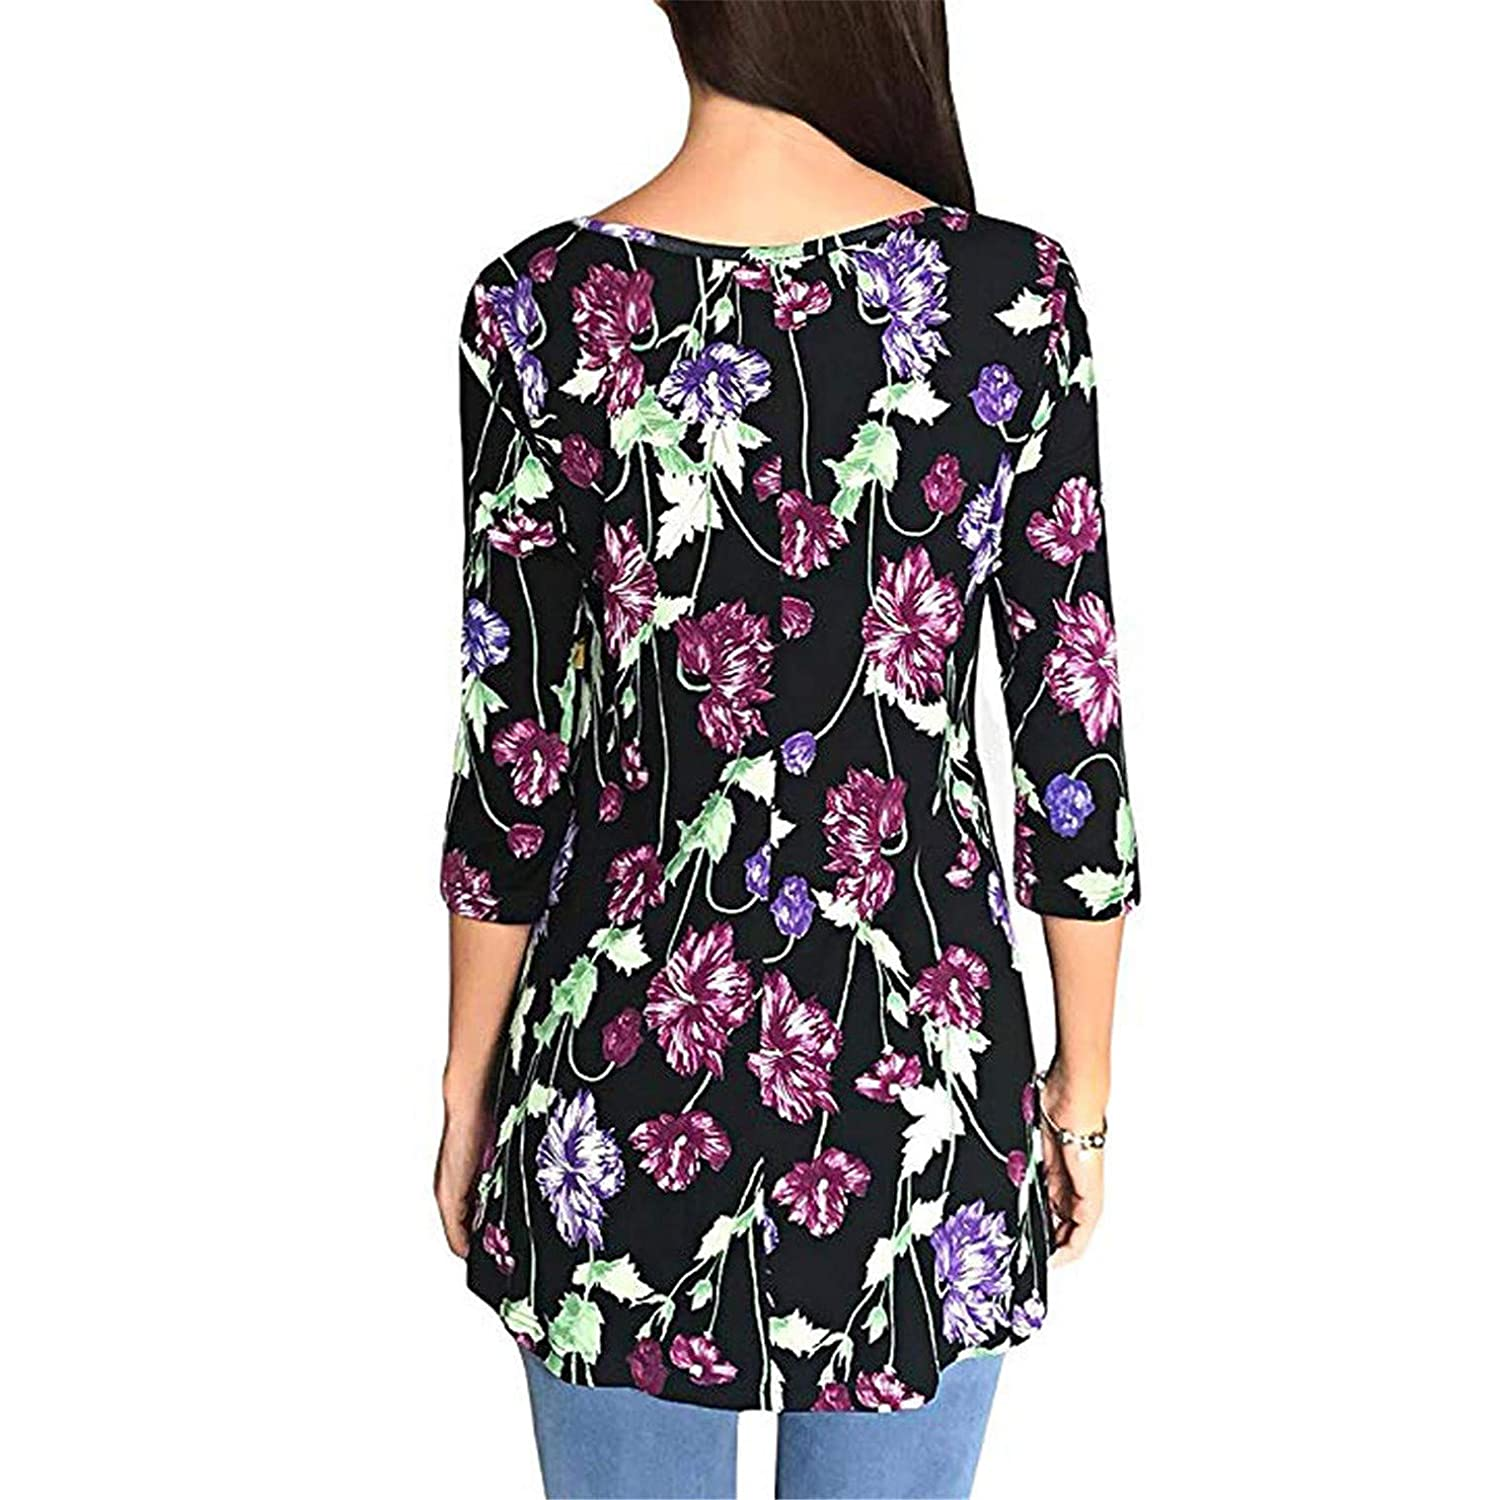 TIFENNY Womens Fashion Casual Floral Print Shirts 3//4 Sleeves O-Neck Tunic Blouse Spring Vintage Tops